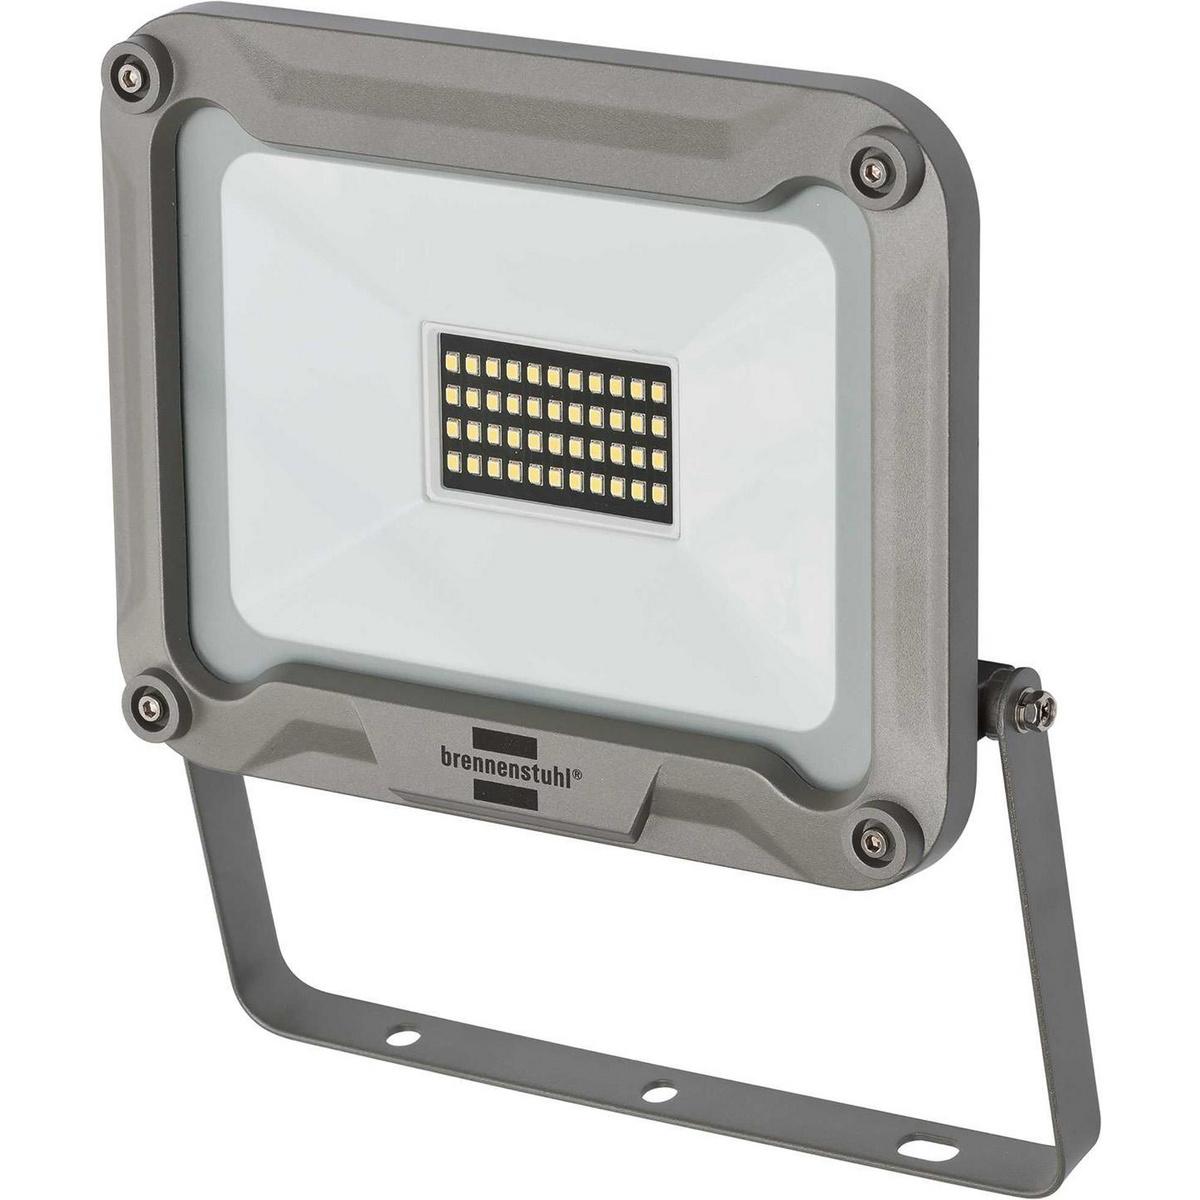 LED Floodlight, 50 W, 4770 lm, Zilver